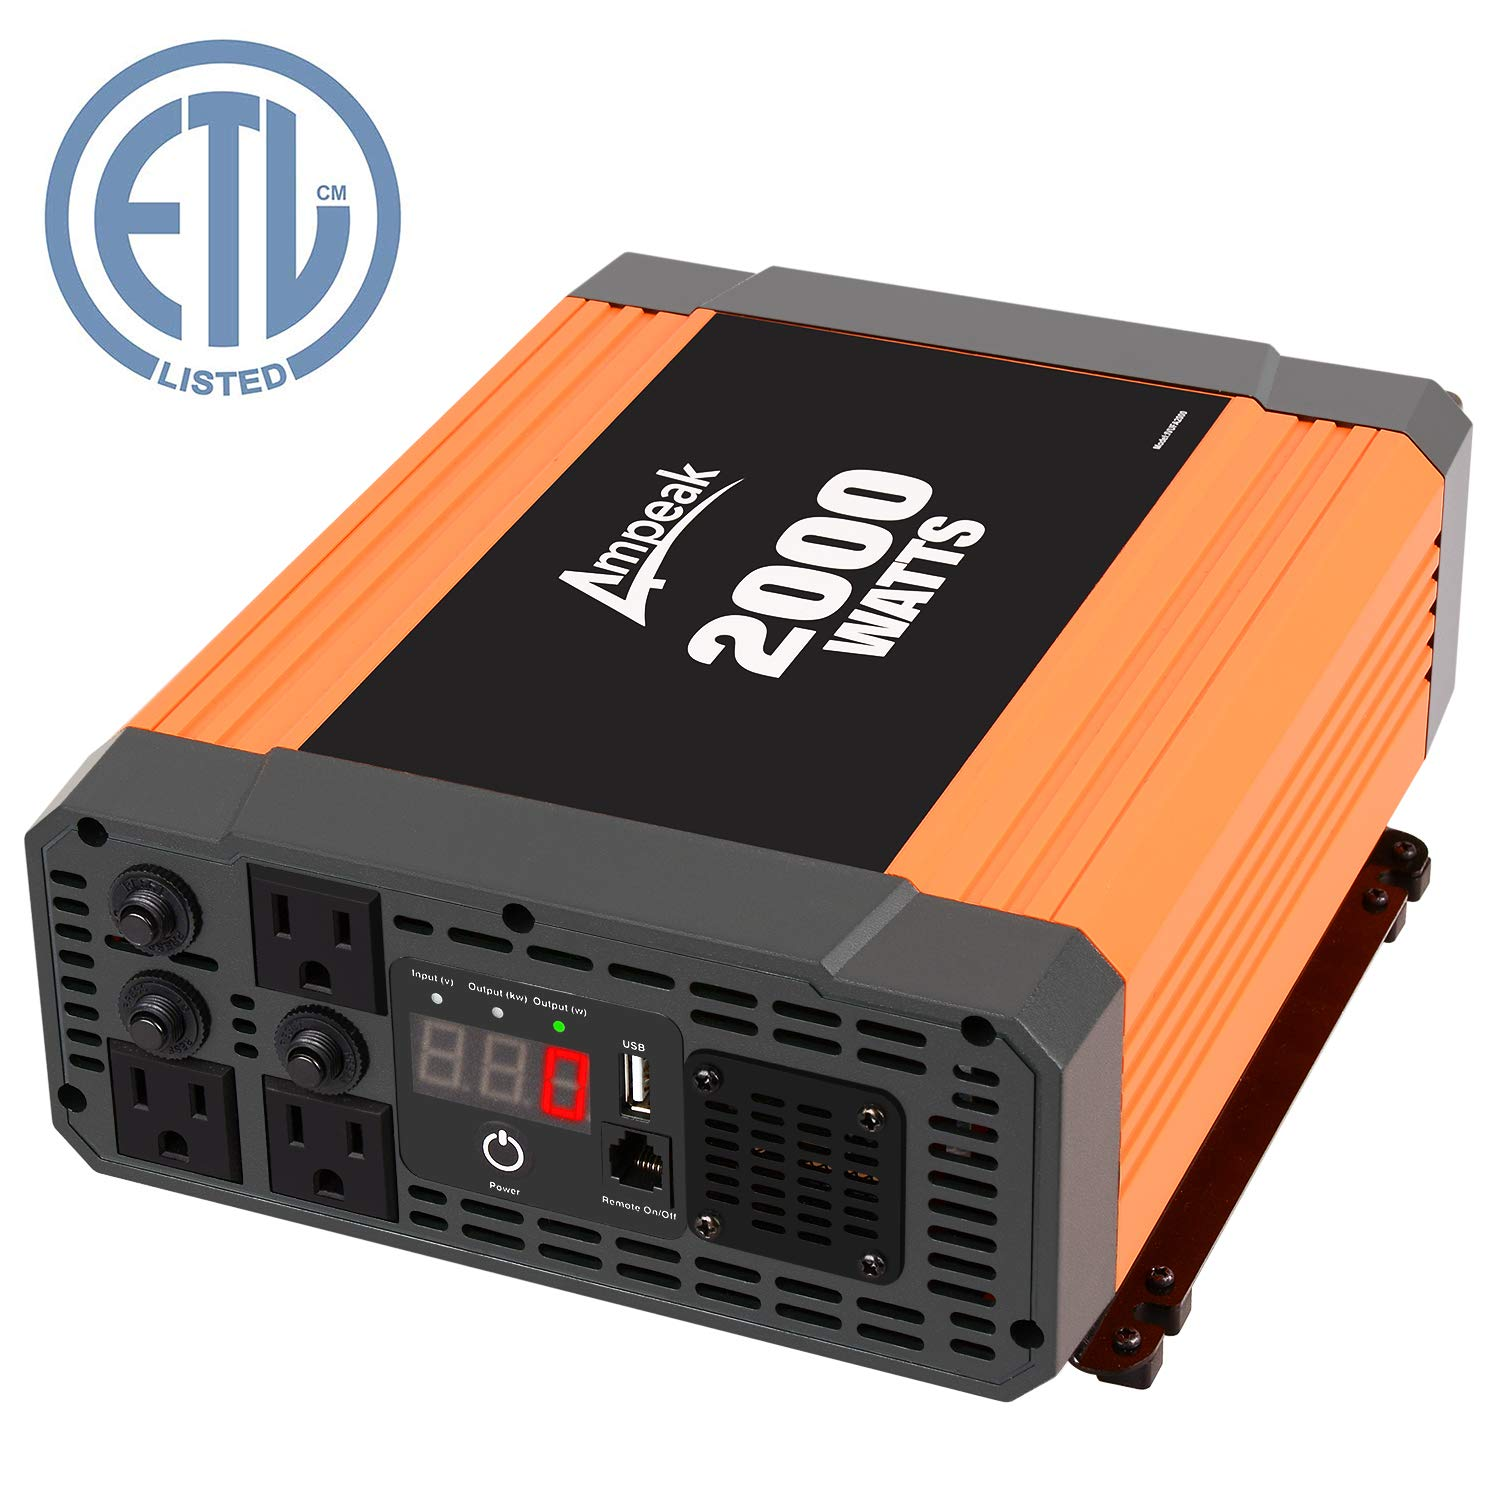 5 Best Power Inverters For Trucks Reviews - Updated 2020 9